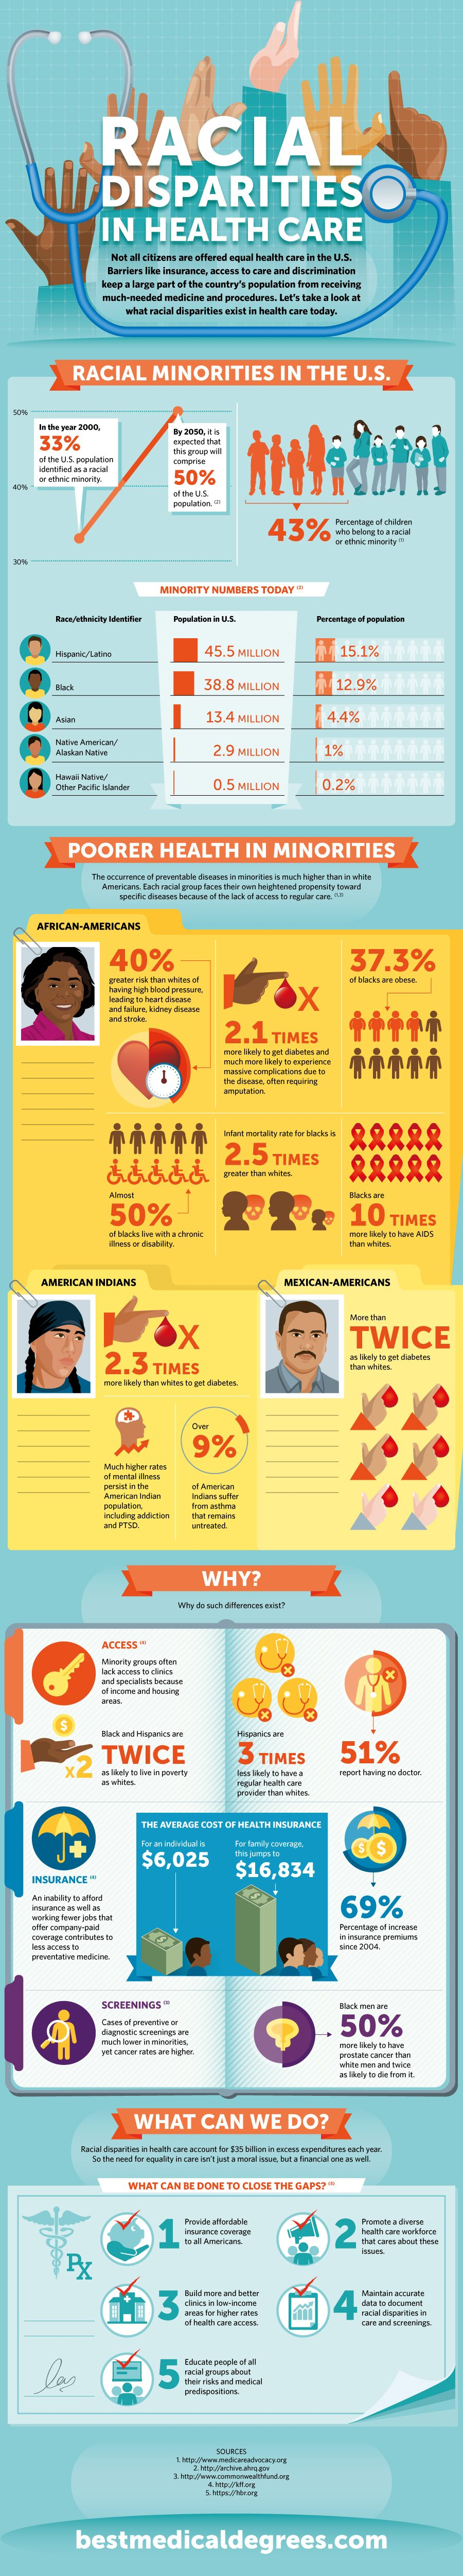 Health care disparities infographic